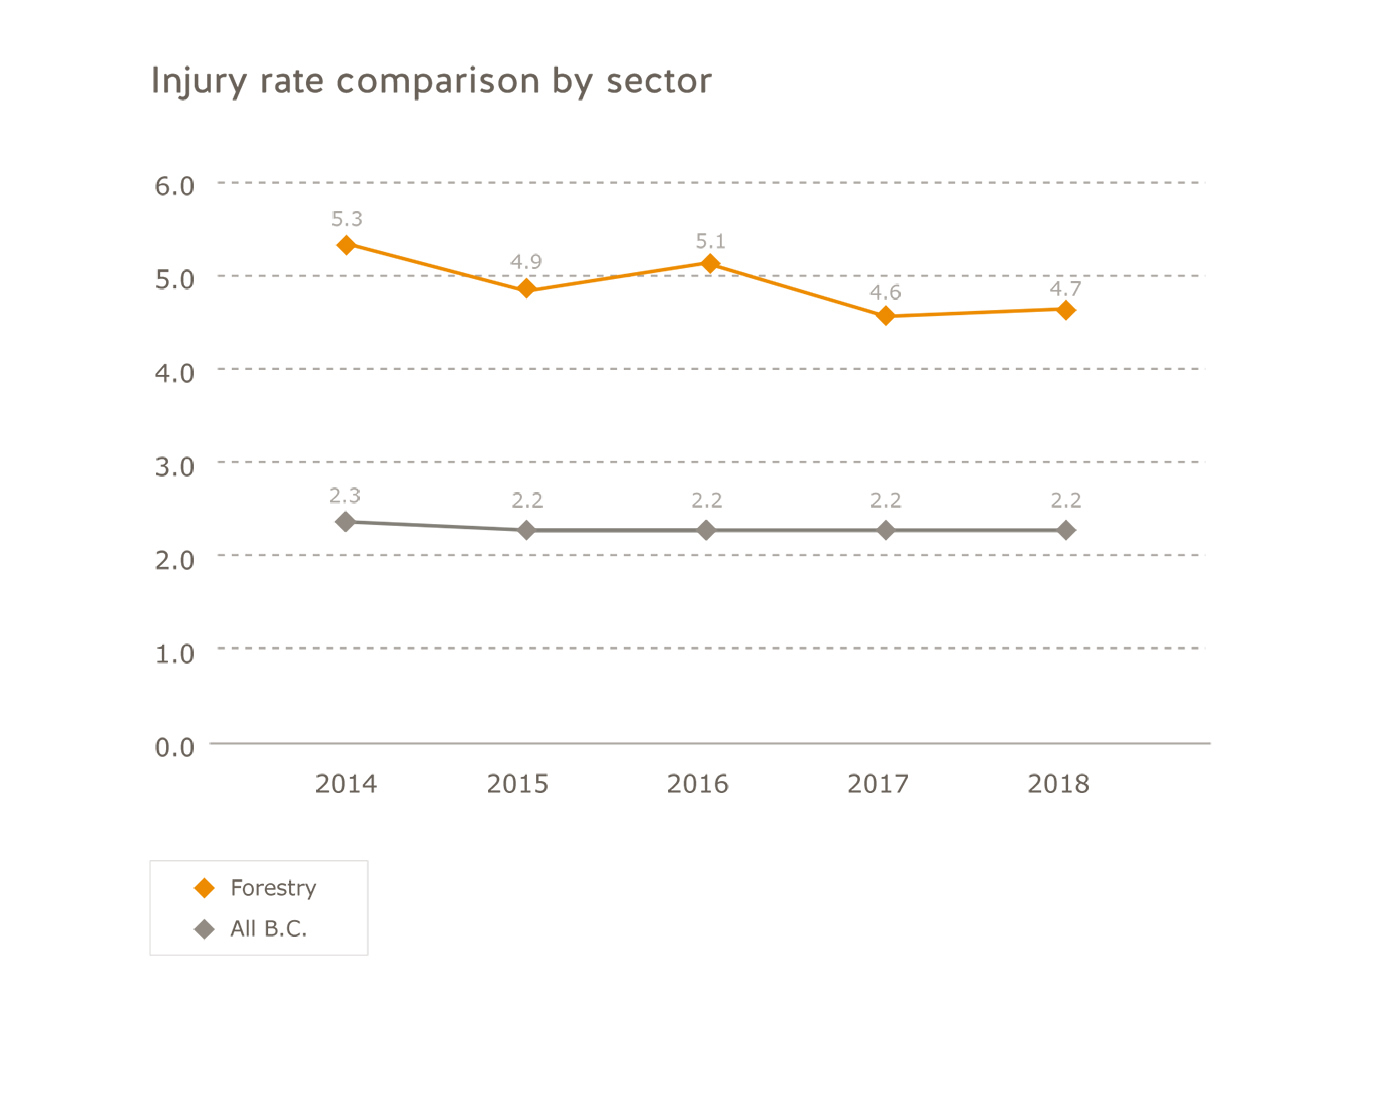 Forestry sector injury rate comparison by sector for 2014 to 2018. All B.C.: 2014=2.3; 2015=2.2; 2016=2.2; 2017=2.2; 2018=2.2. Forestry: 2014=5.3; 2015=4.9; 2016=5.1; 2017=4.6; 2018=4.7.